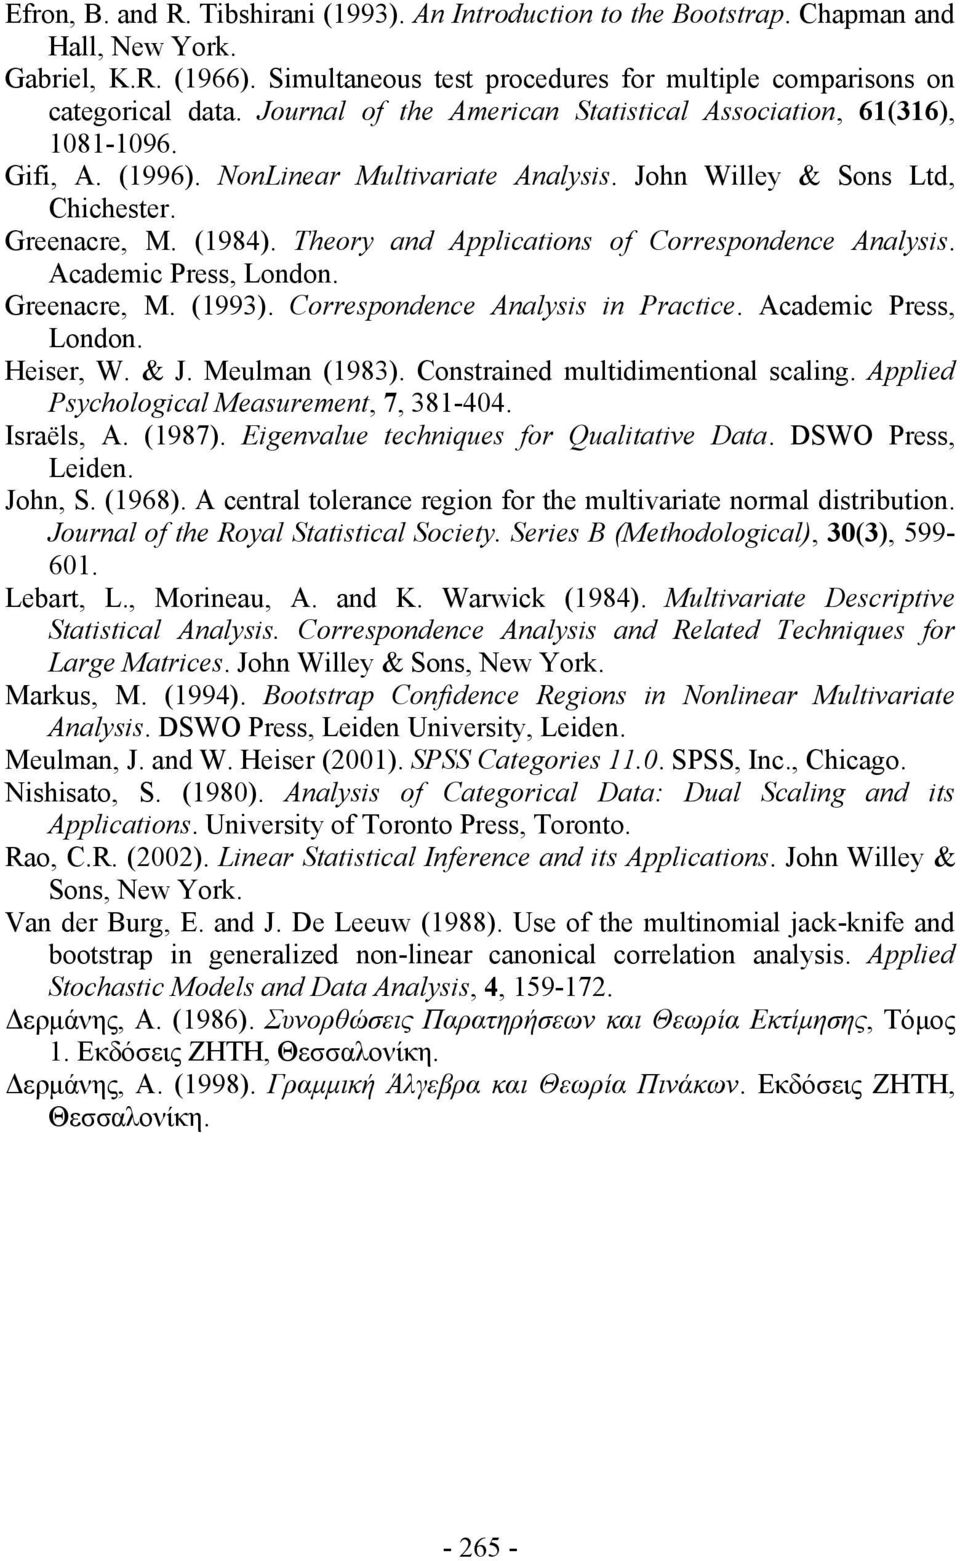 Theory and Applications of Correspondence Analysis. Academic Press, London. Greenacre, M. (1993). Correspondence Analysis in Practice. Academic Press, London. Heiser, W. & J. Melman (1983).